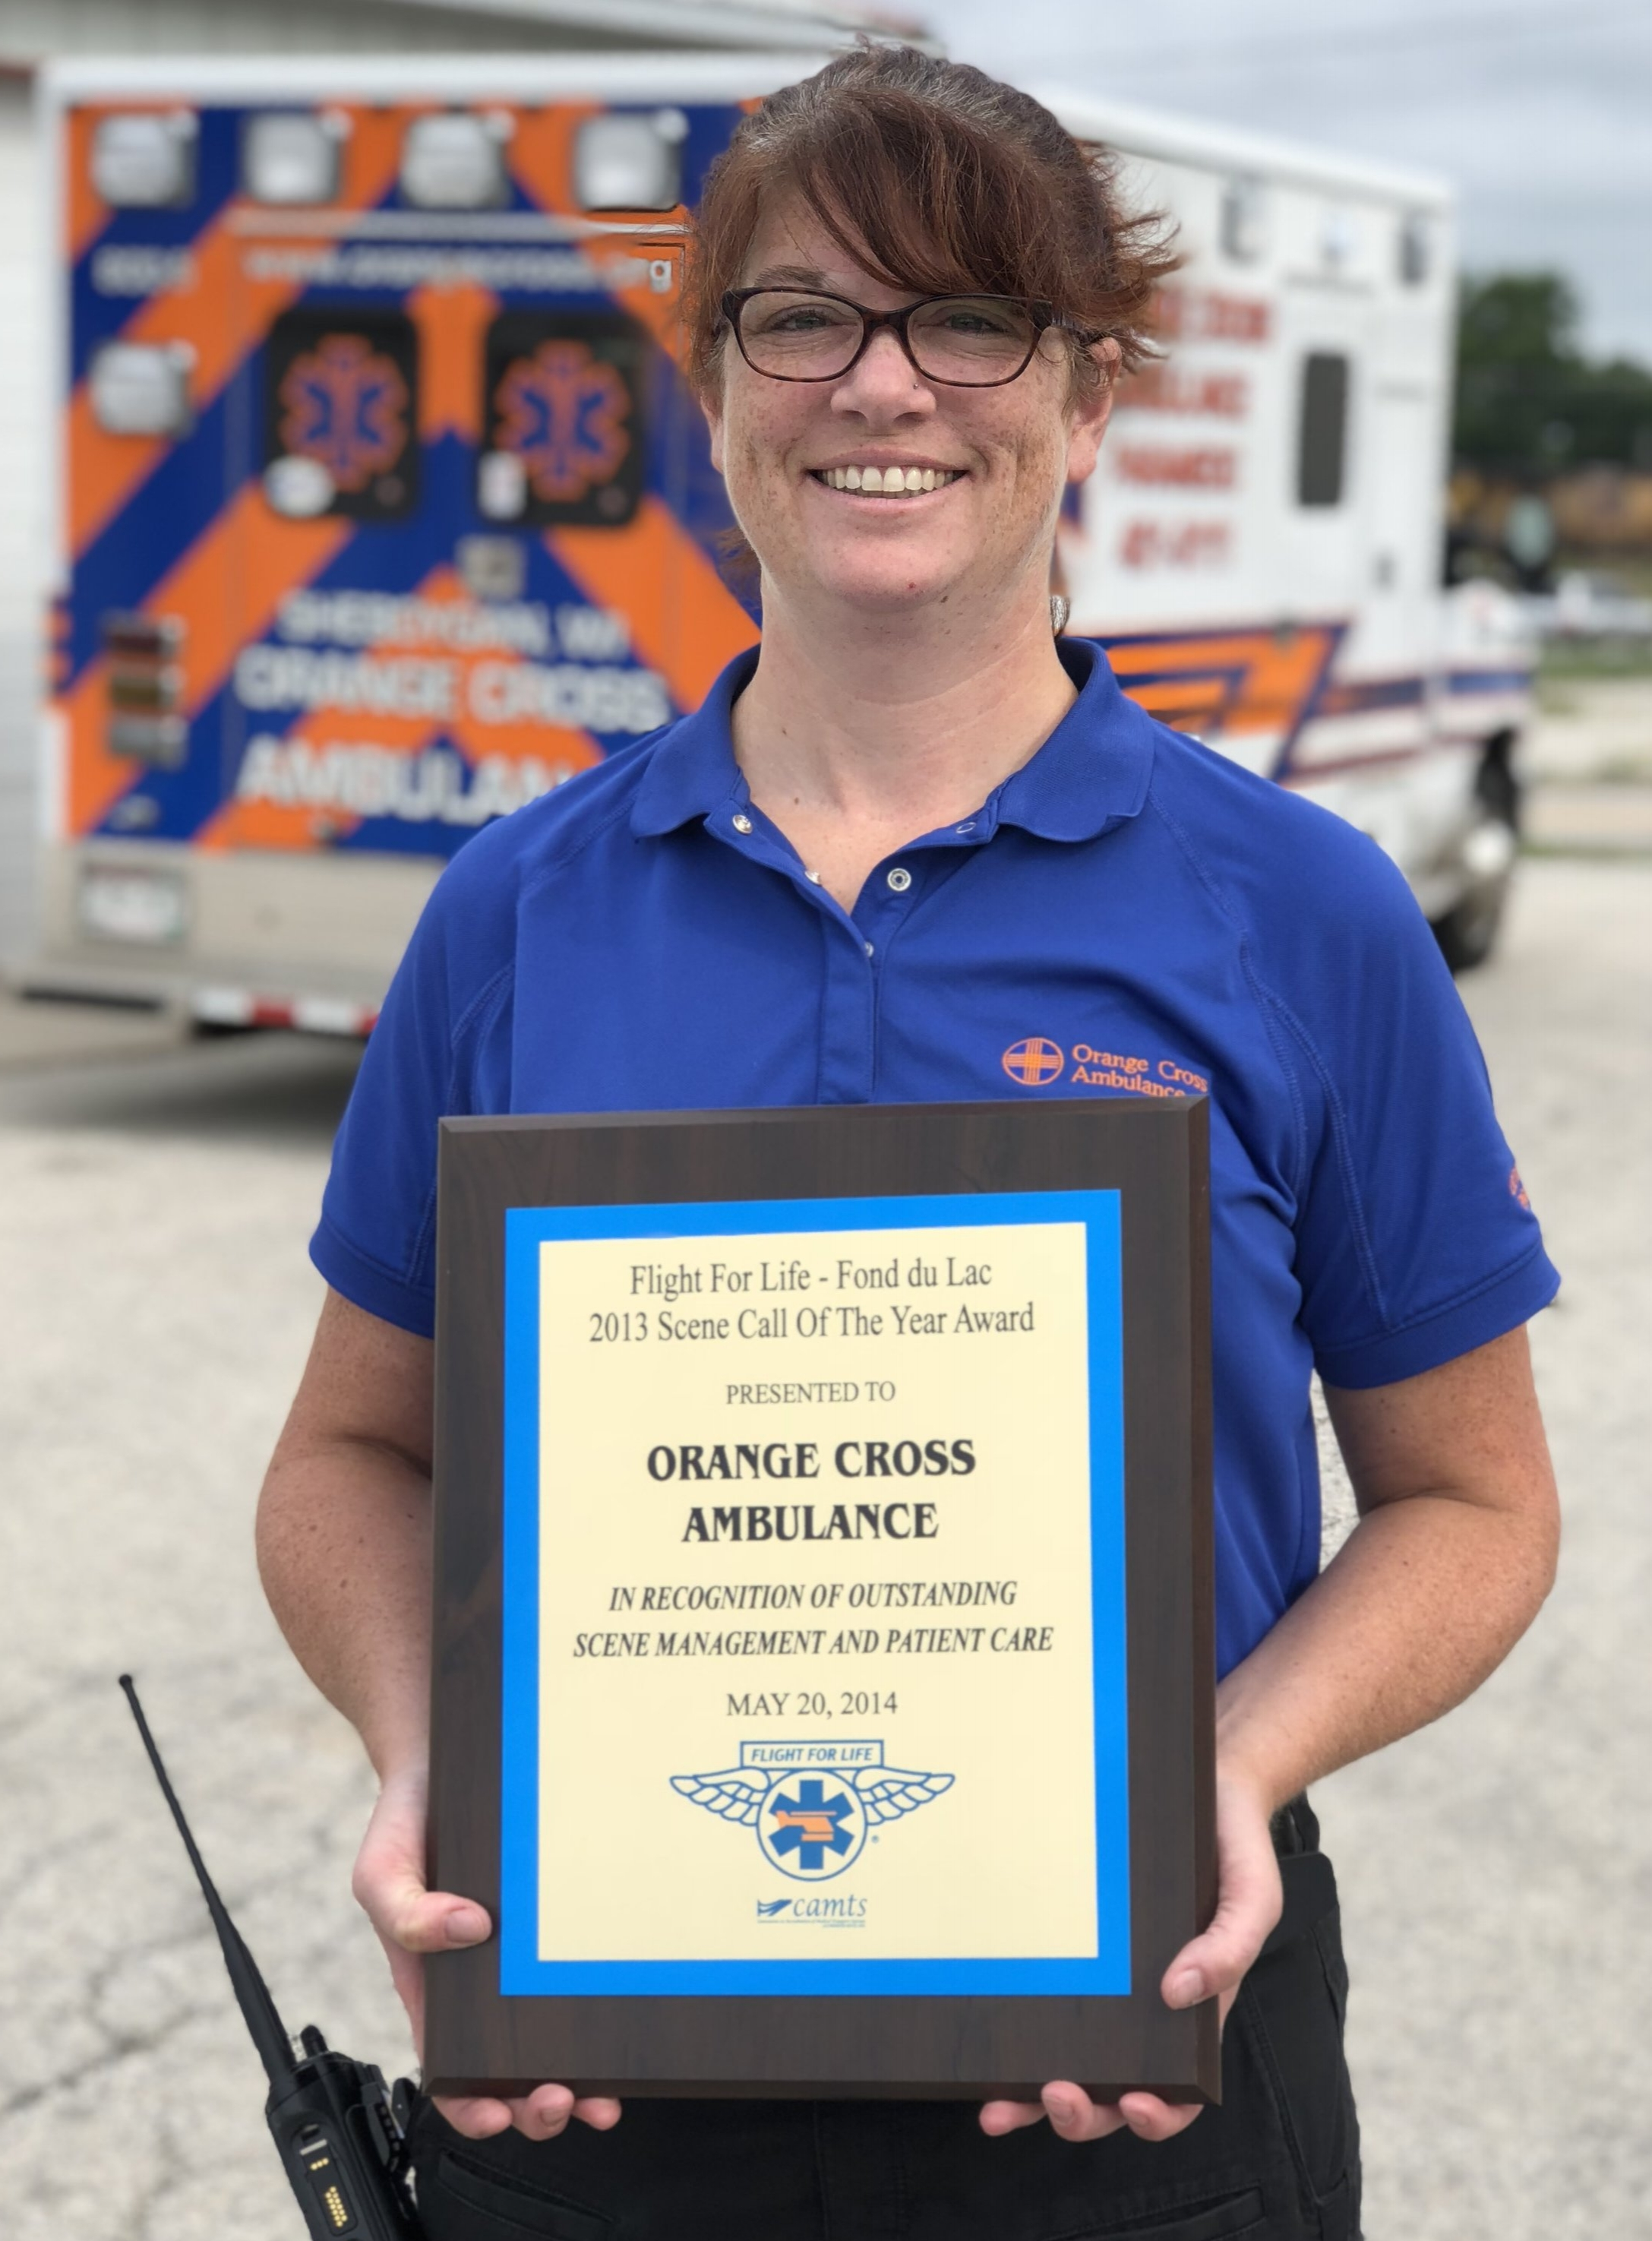 OCA CCP Rebecca Versey with the 2013 Flight for Life Scene Call of the Year Award for her demonstration of execptional care and team coordination when treating a critical pediatric trauma patient.